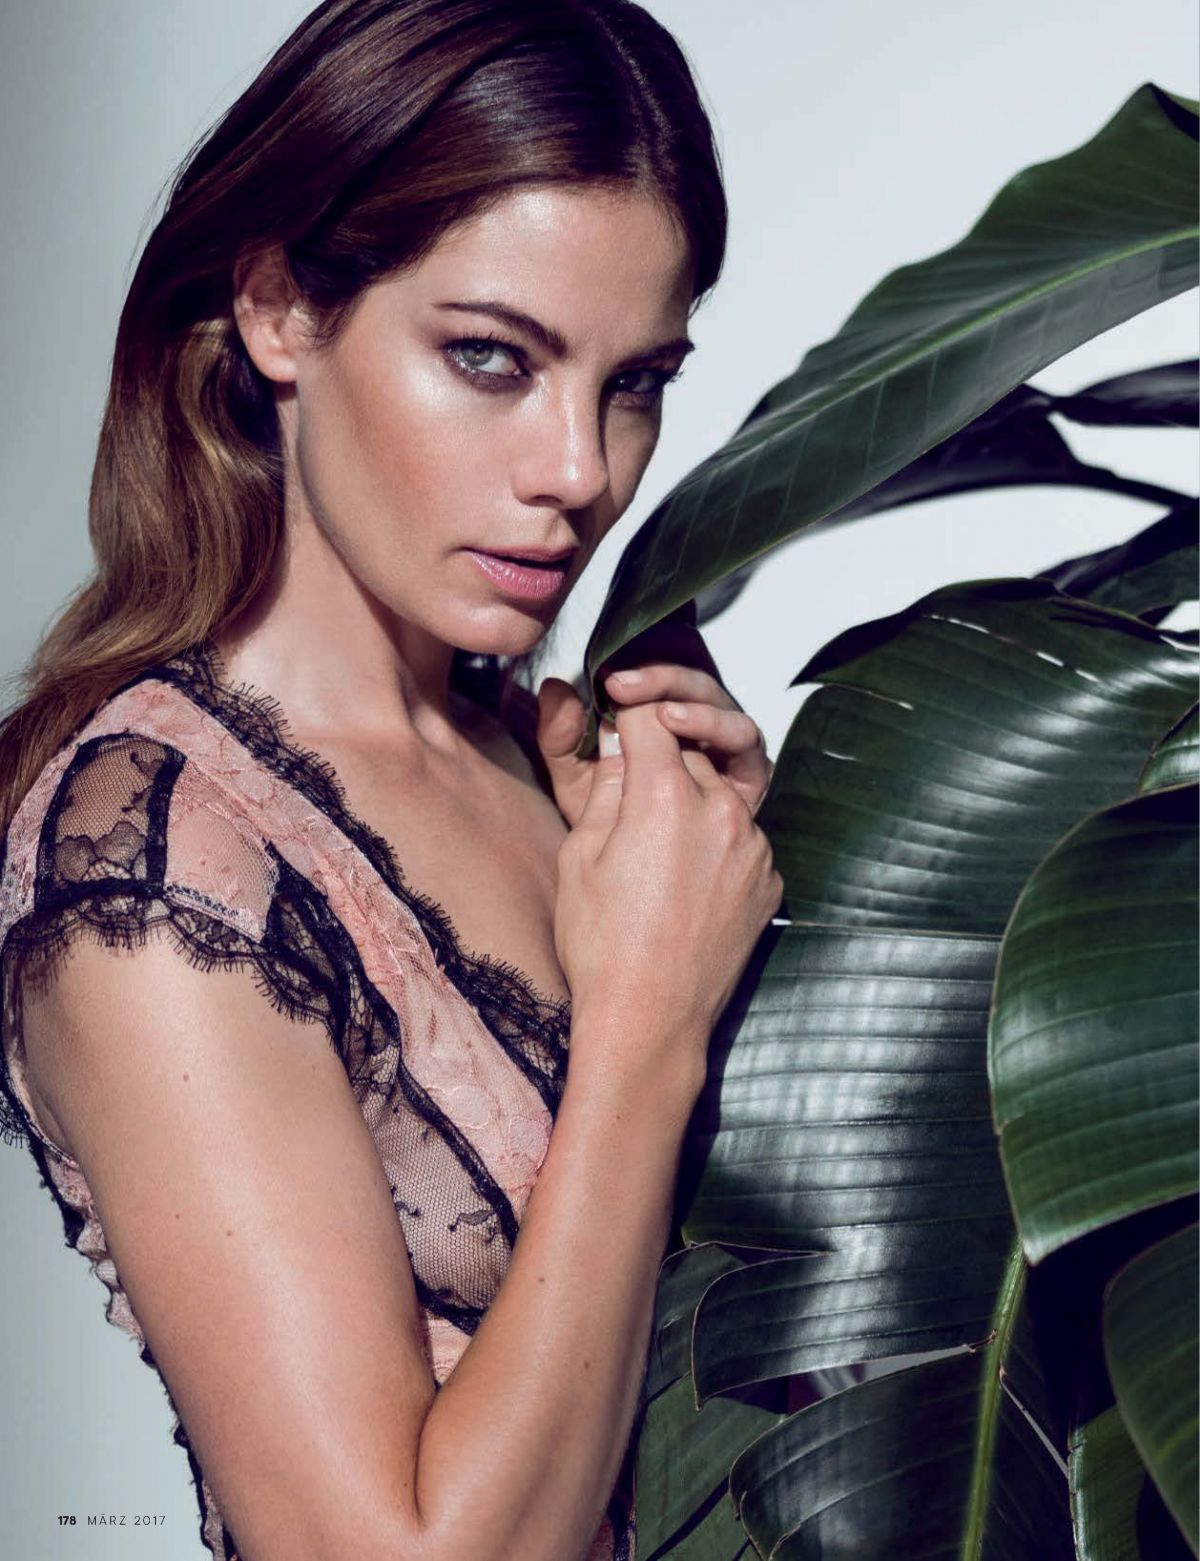 MICHELLE MONAGHAN in GQ Magazine, Germany March 2017